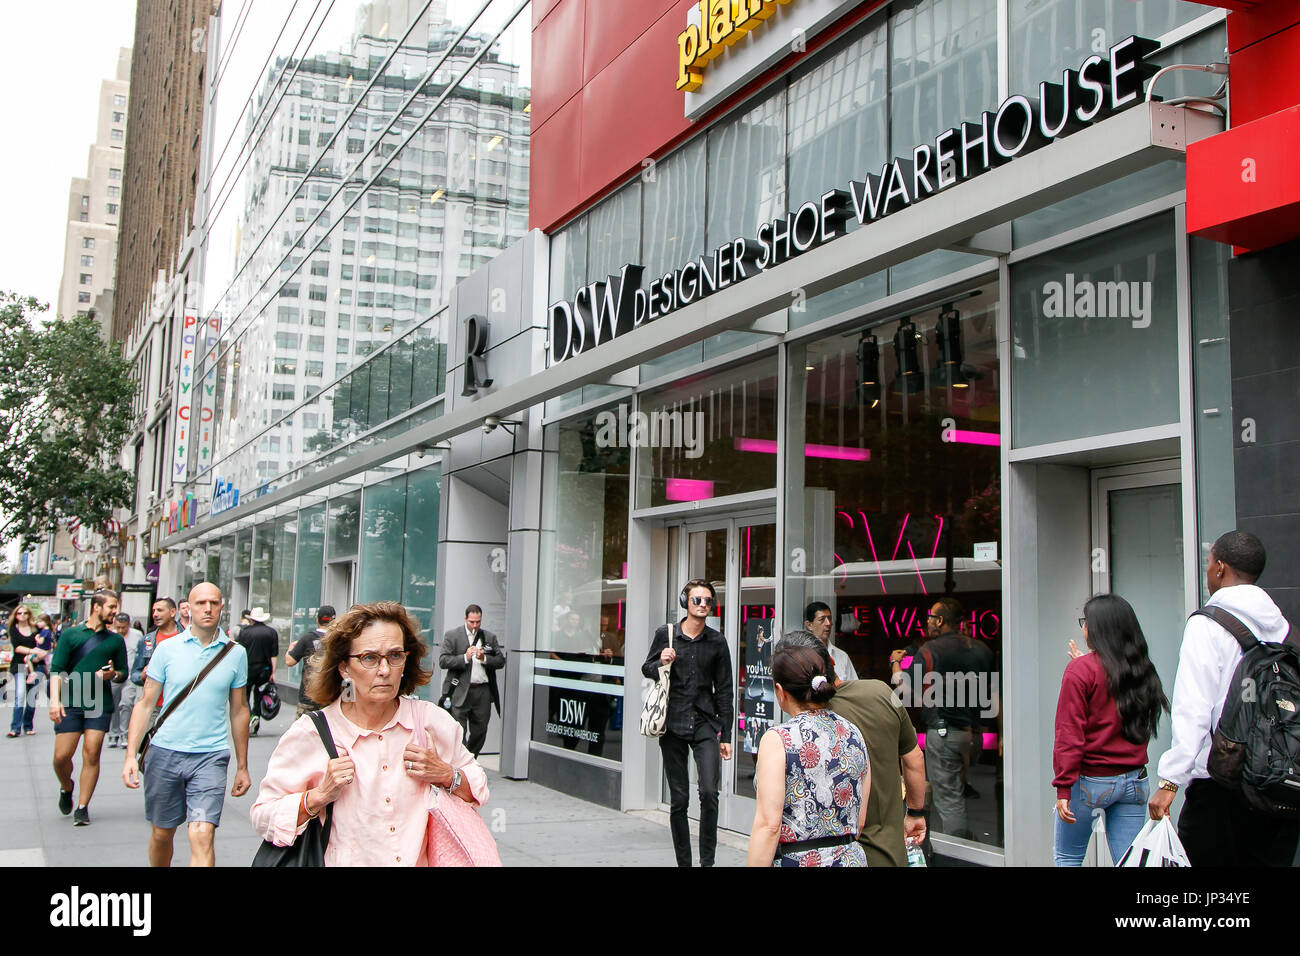 People walk by a DSW store in Manhattan. - Stock Image